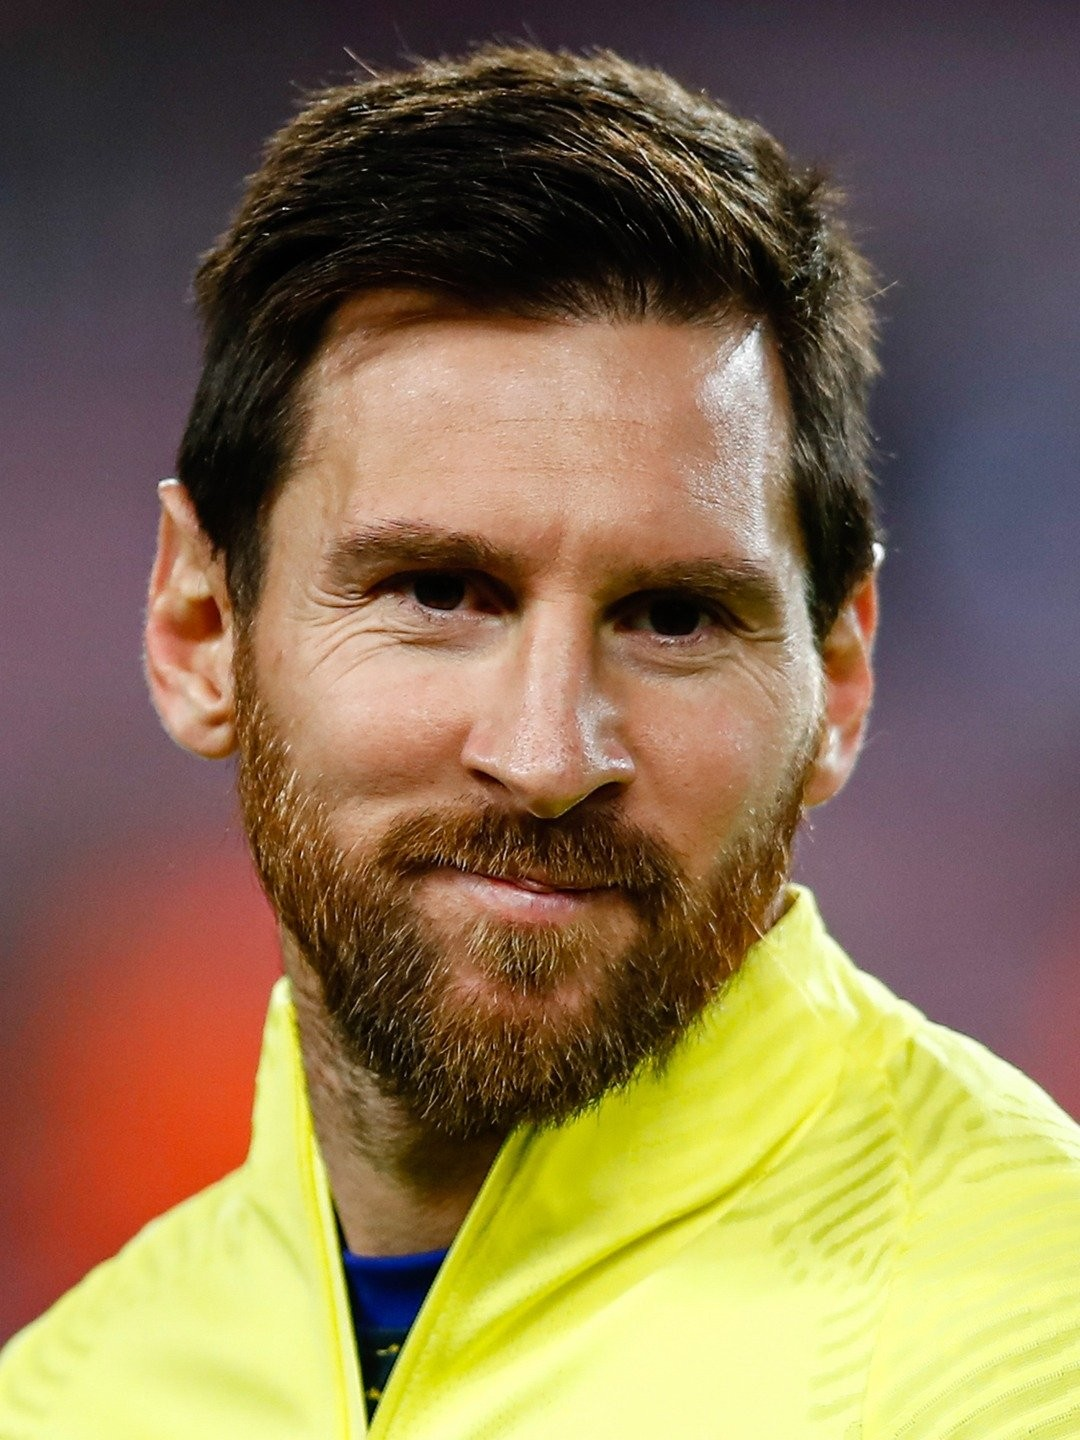 Top 10 Most Famous Football Players of All Time 2021